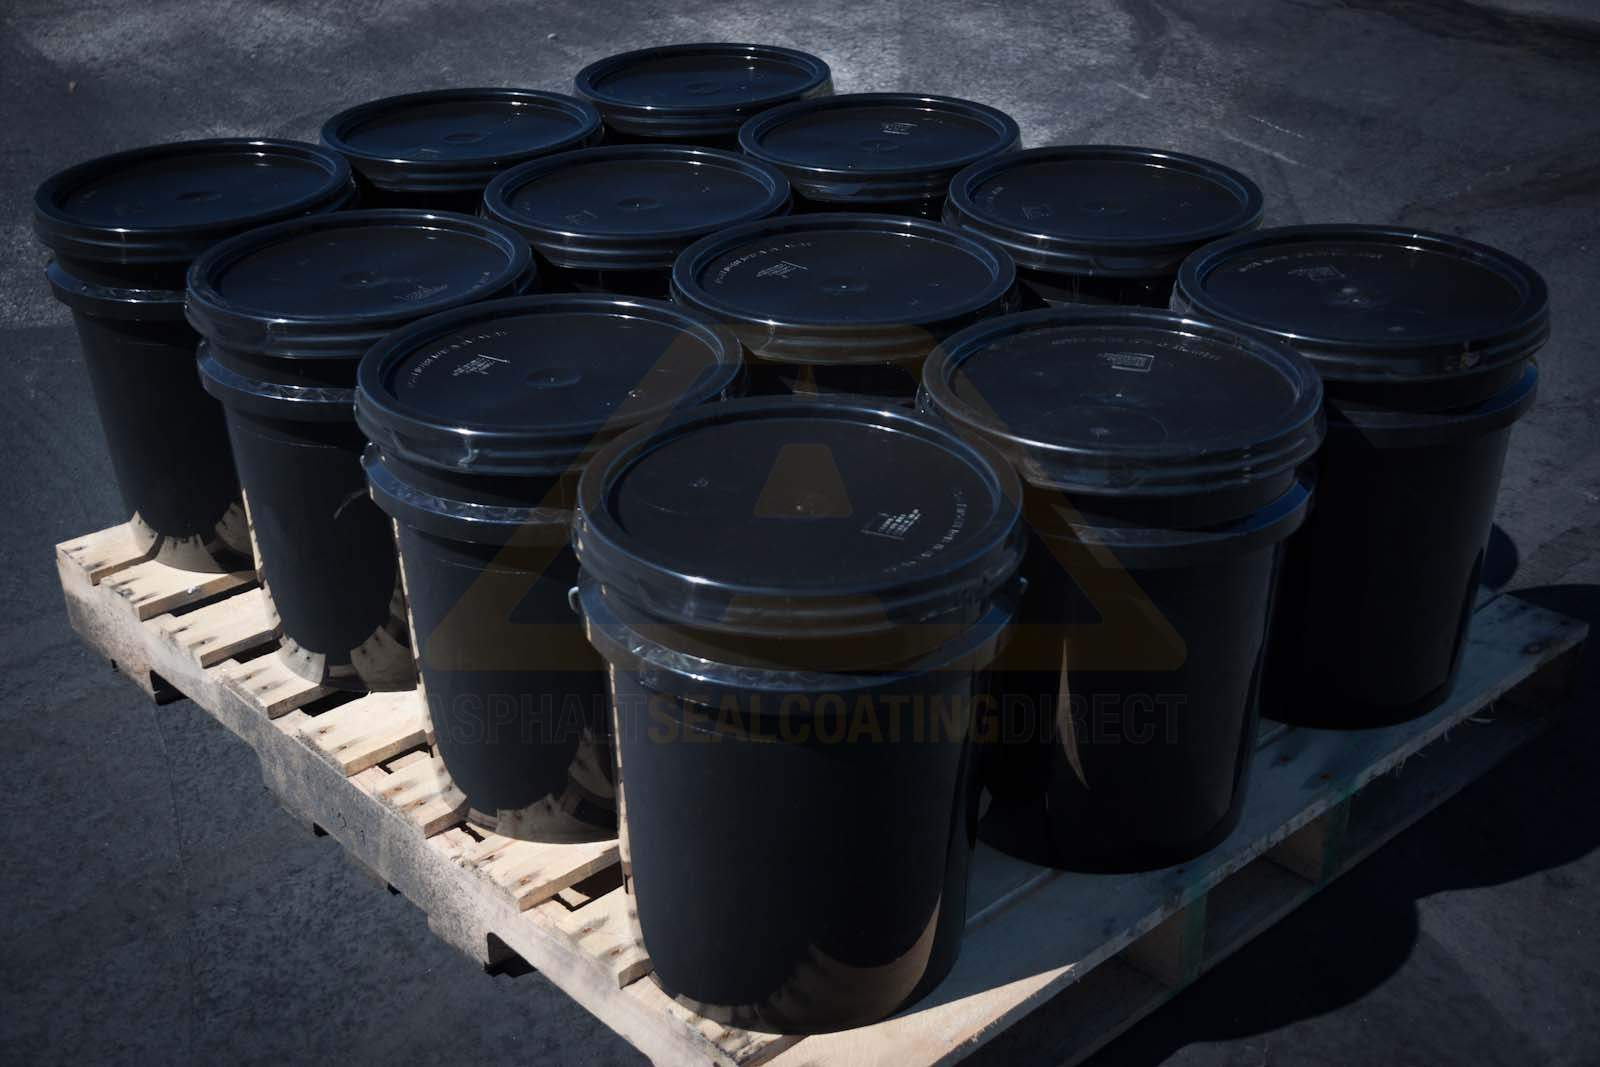 pallet-12-5-gallon-buckets.jpg